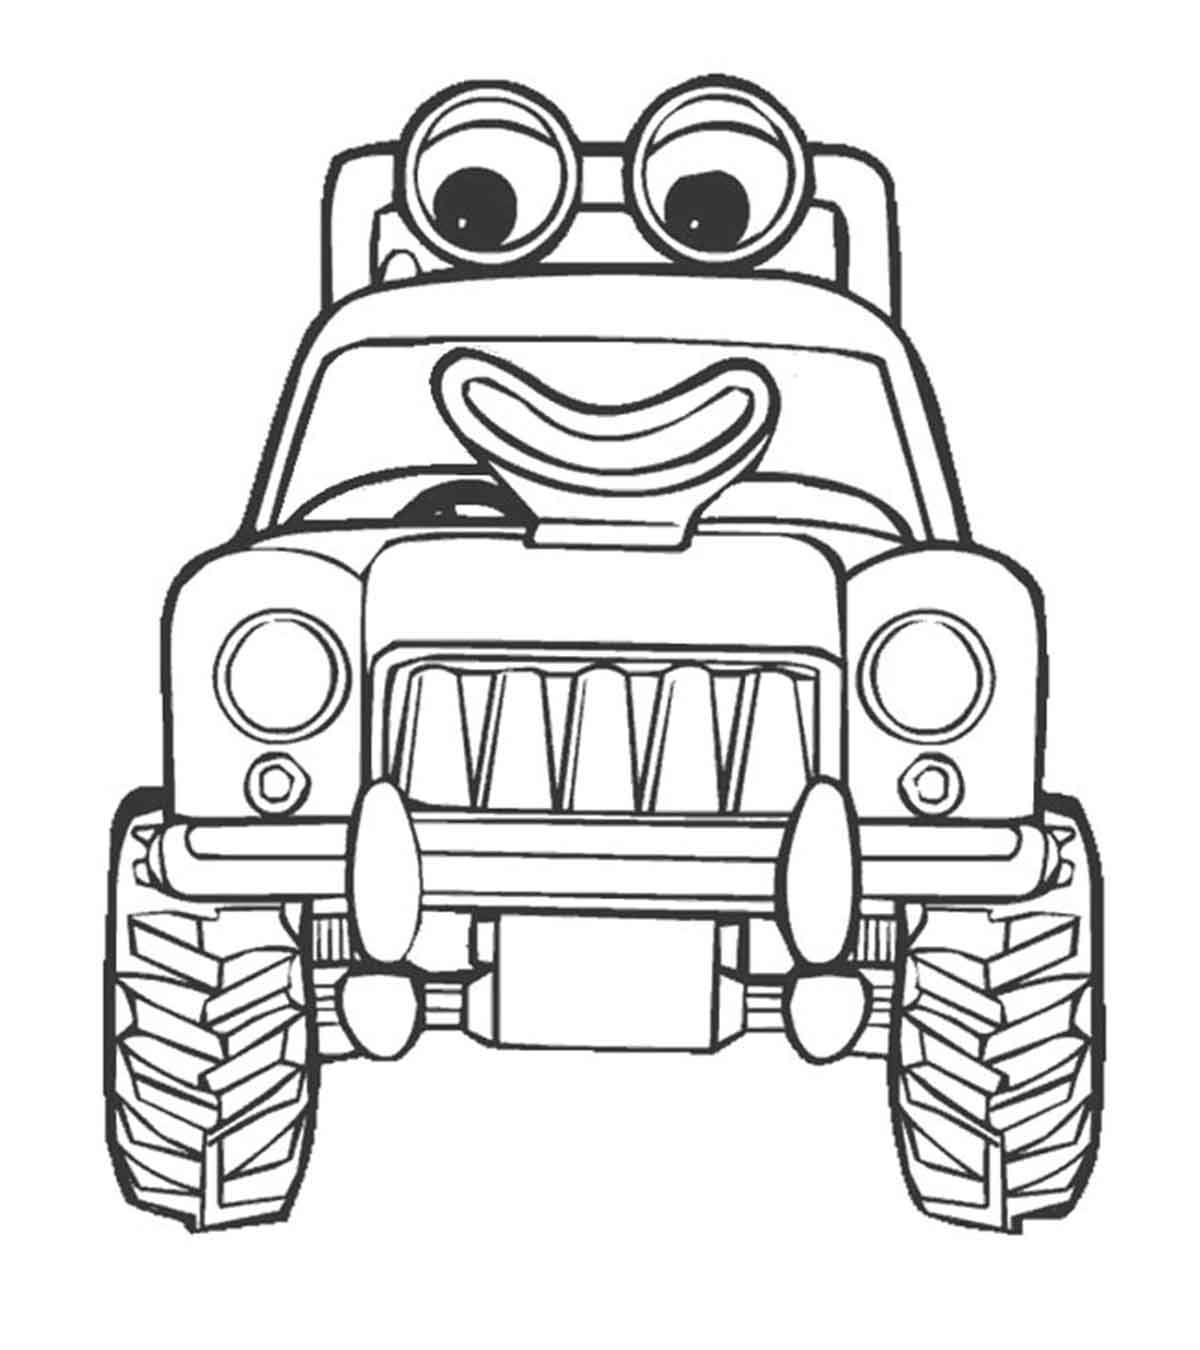 My Room Coloring Pages Top 25 Free Printable Tractor Coloring Pages Online